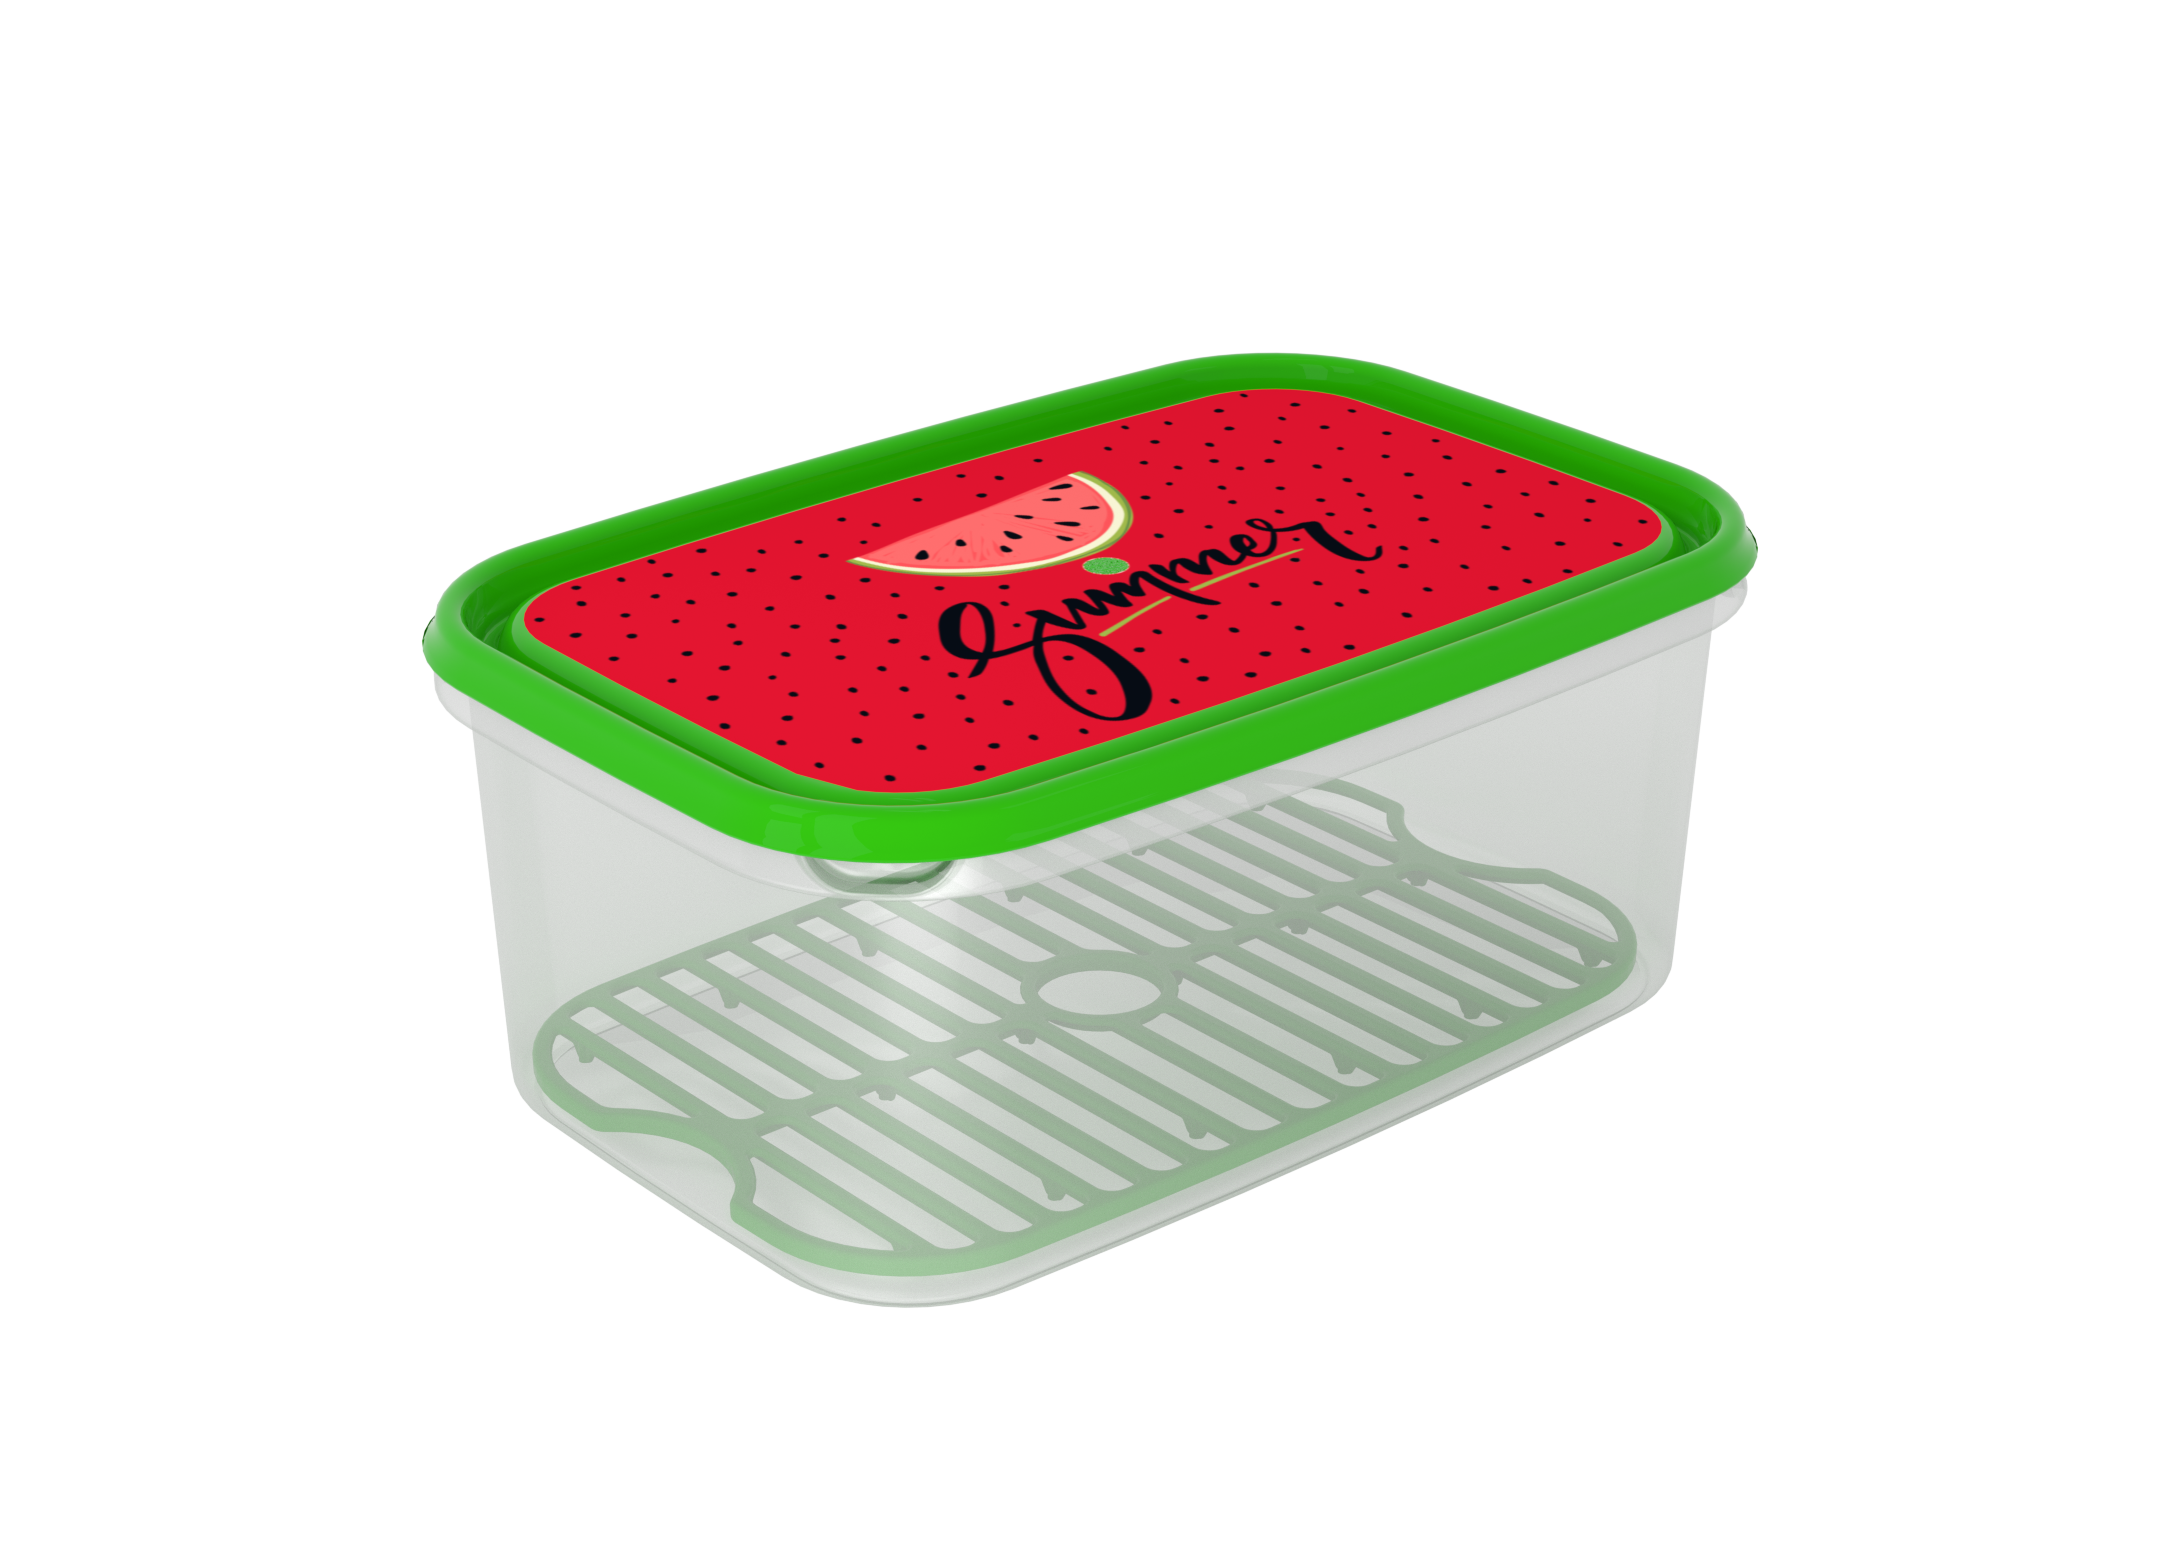 Inbar Food Container 4.4L 7441 Watermelon green IML Lid With Fresh Net Green